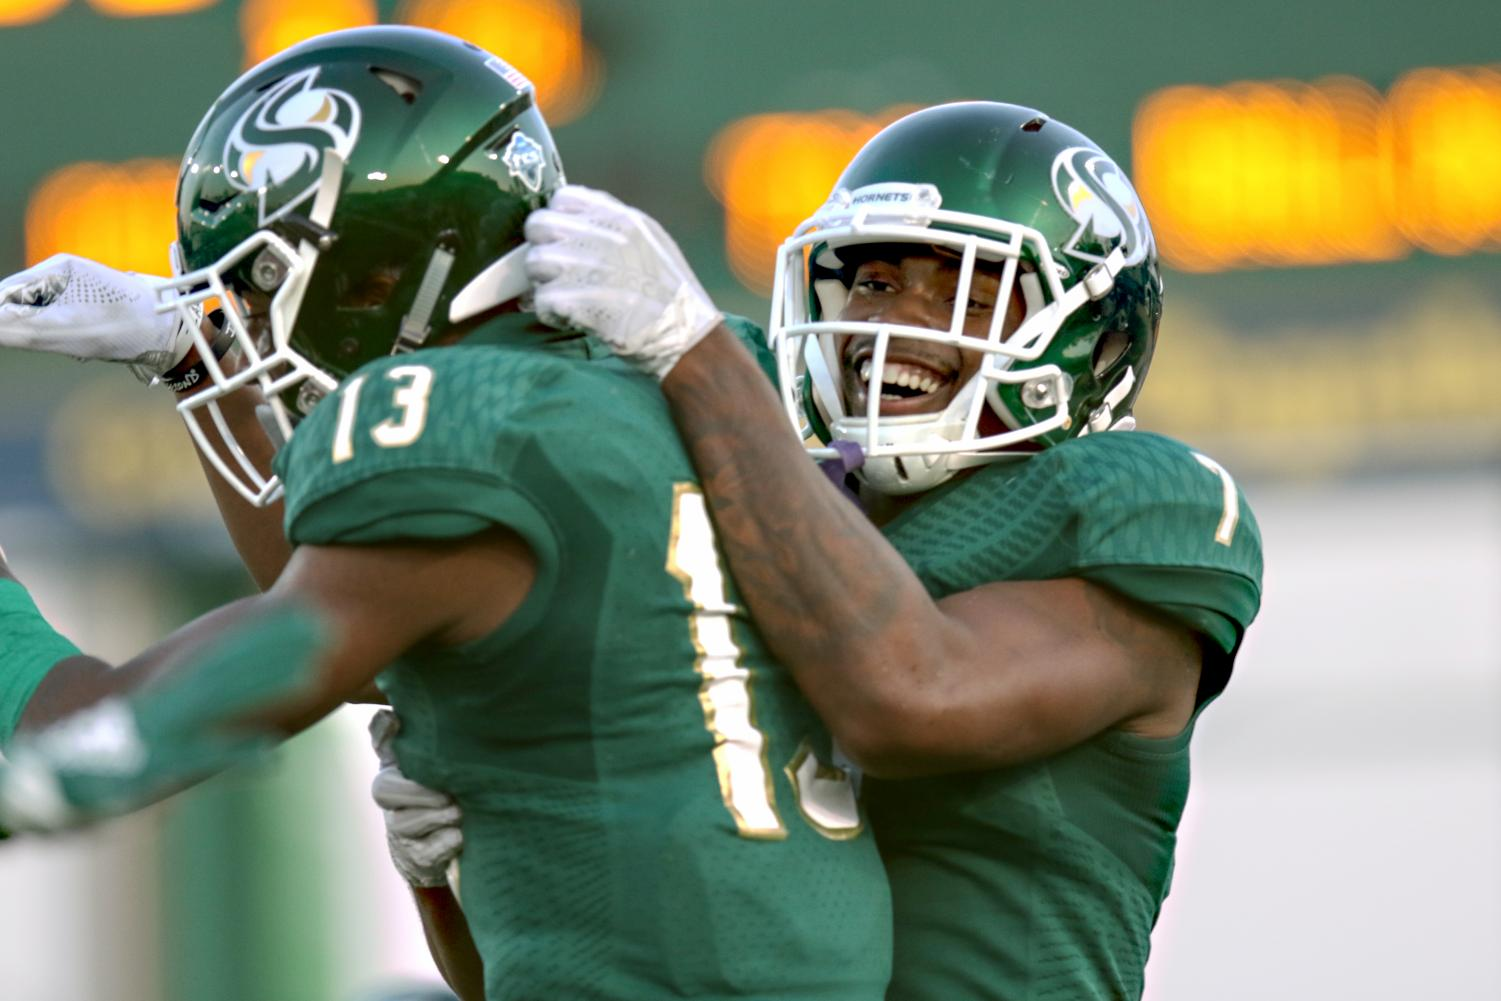 Sacramento State wide receiver Andre Lindsey (7) celebrates with Jaelin Ratliff during the 2018 season. Lindsey signed with the Kansas City Chiefs as an undrafted free agent following the 2019 NFL Draft.